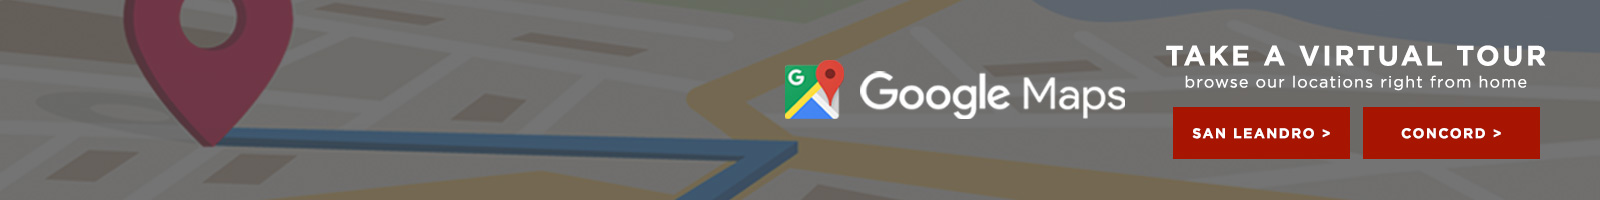 Google Maps Virtual Tour